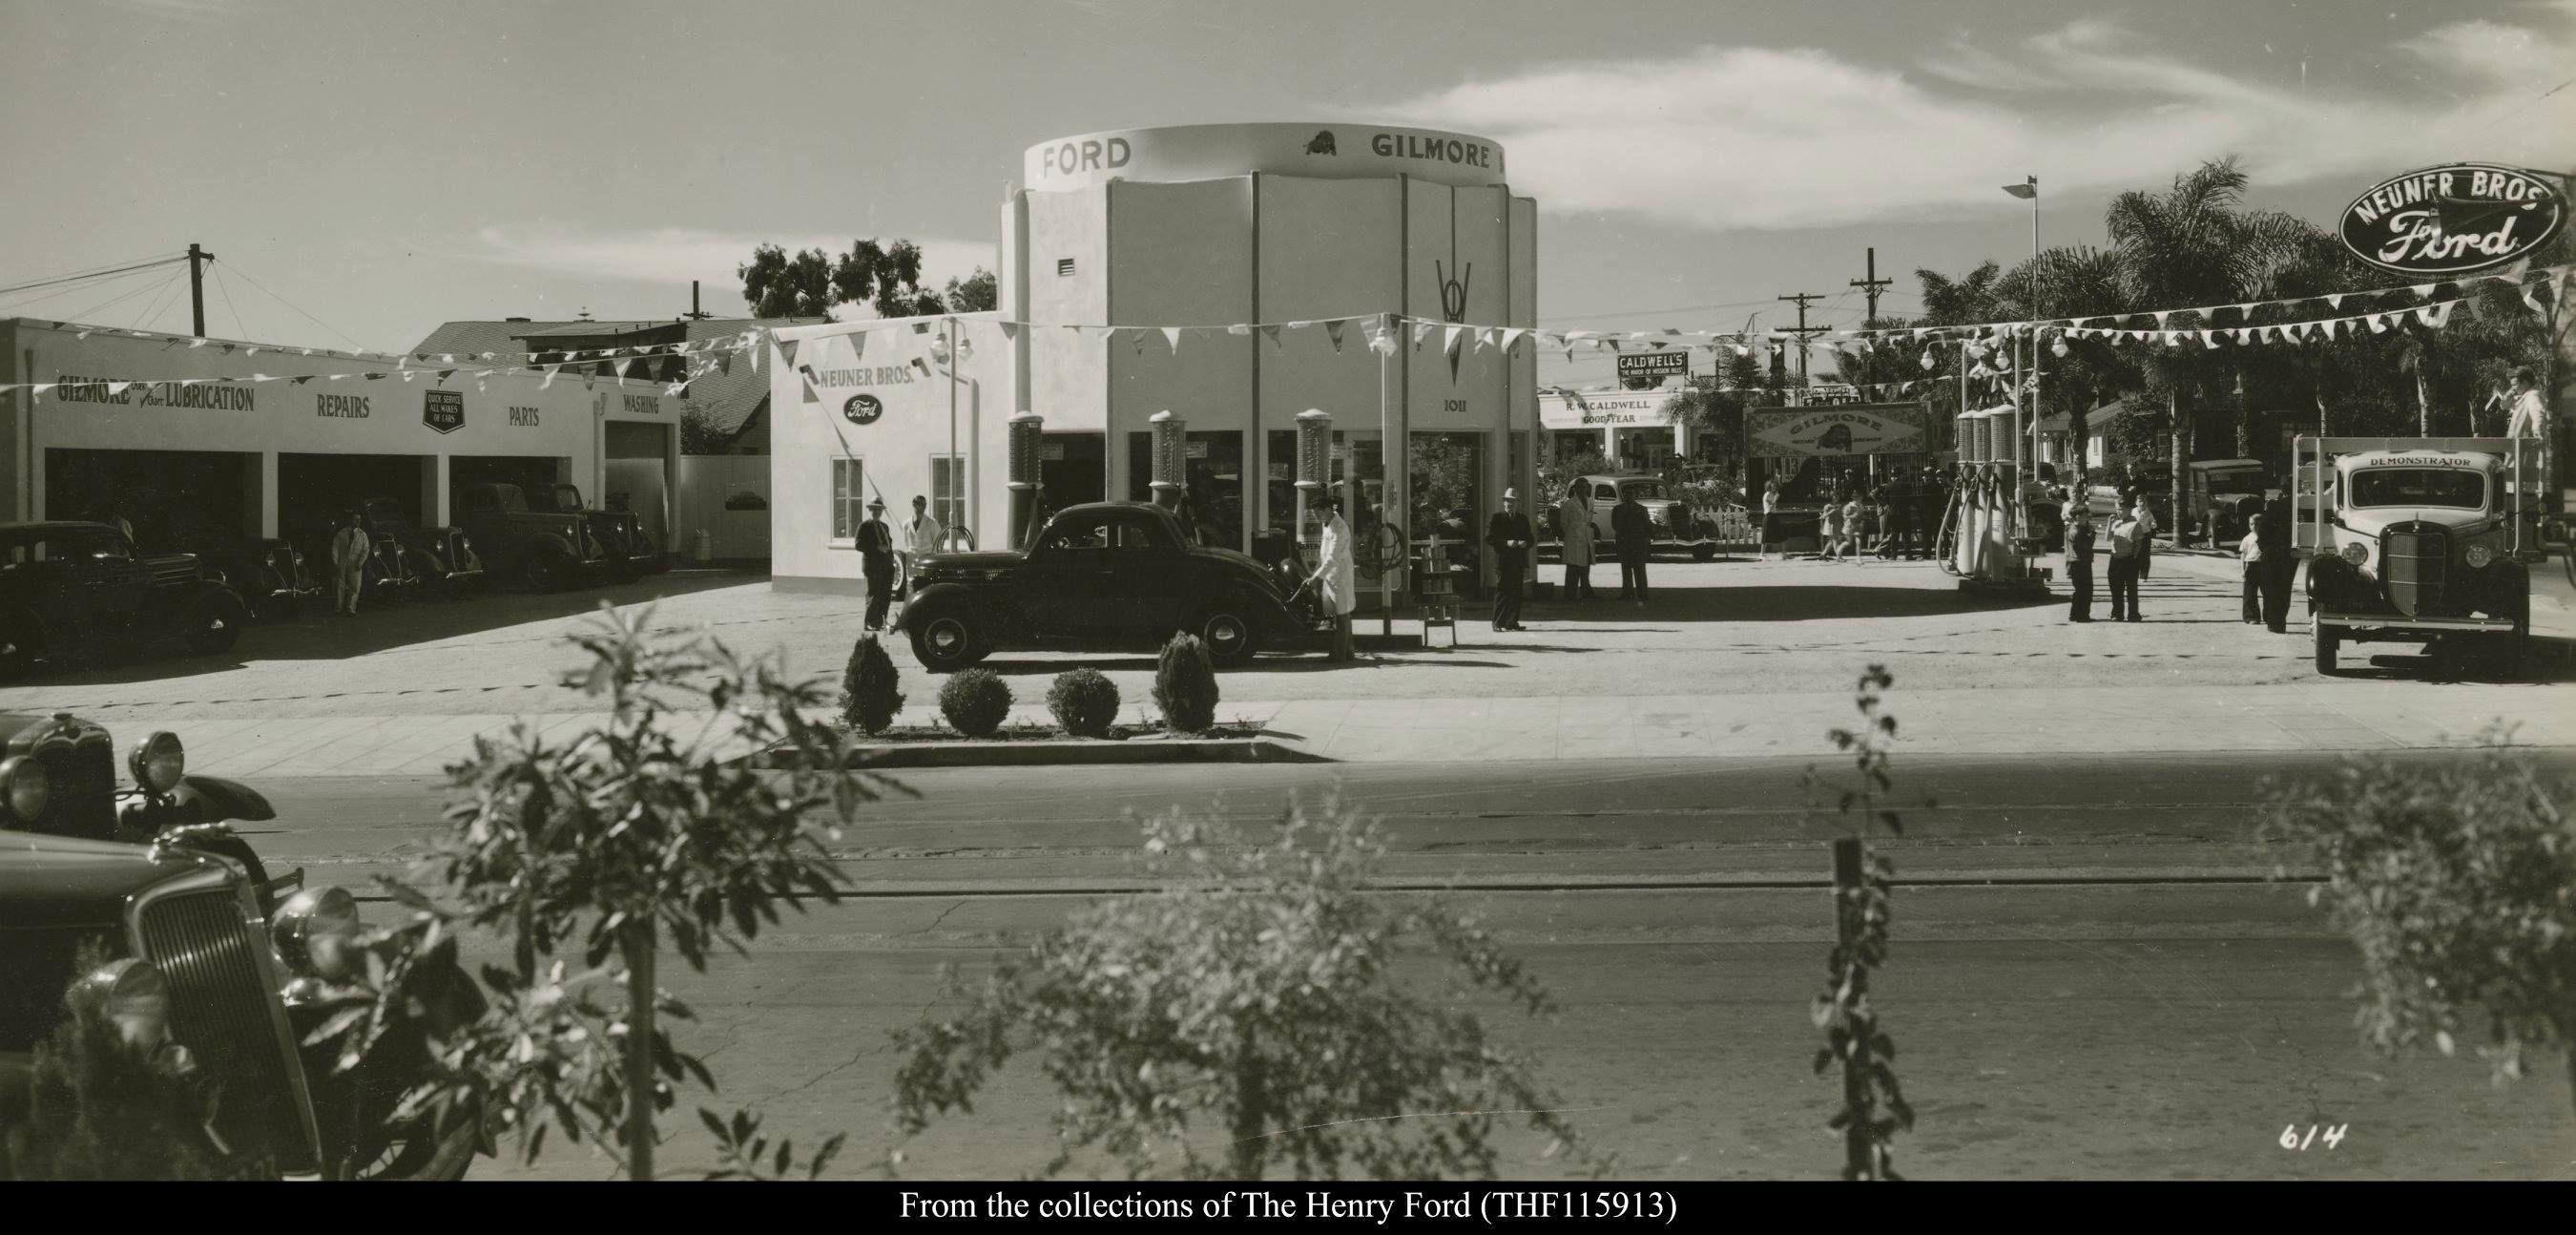 The Neuner Brothers Ford Dealership Building in Mission Hills San